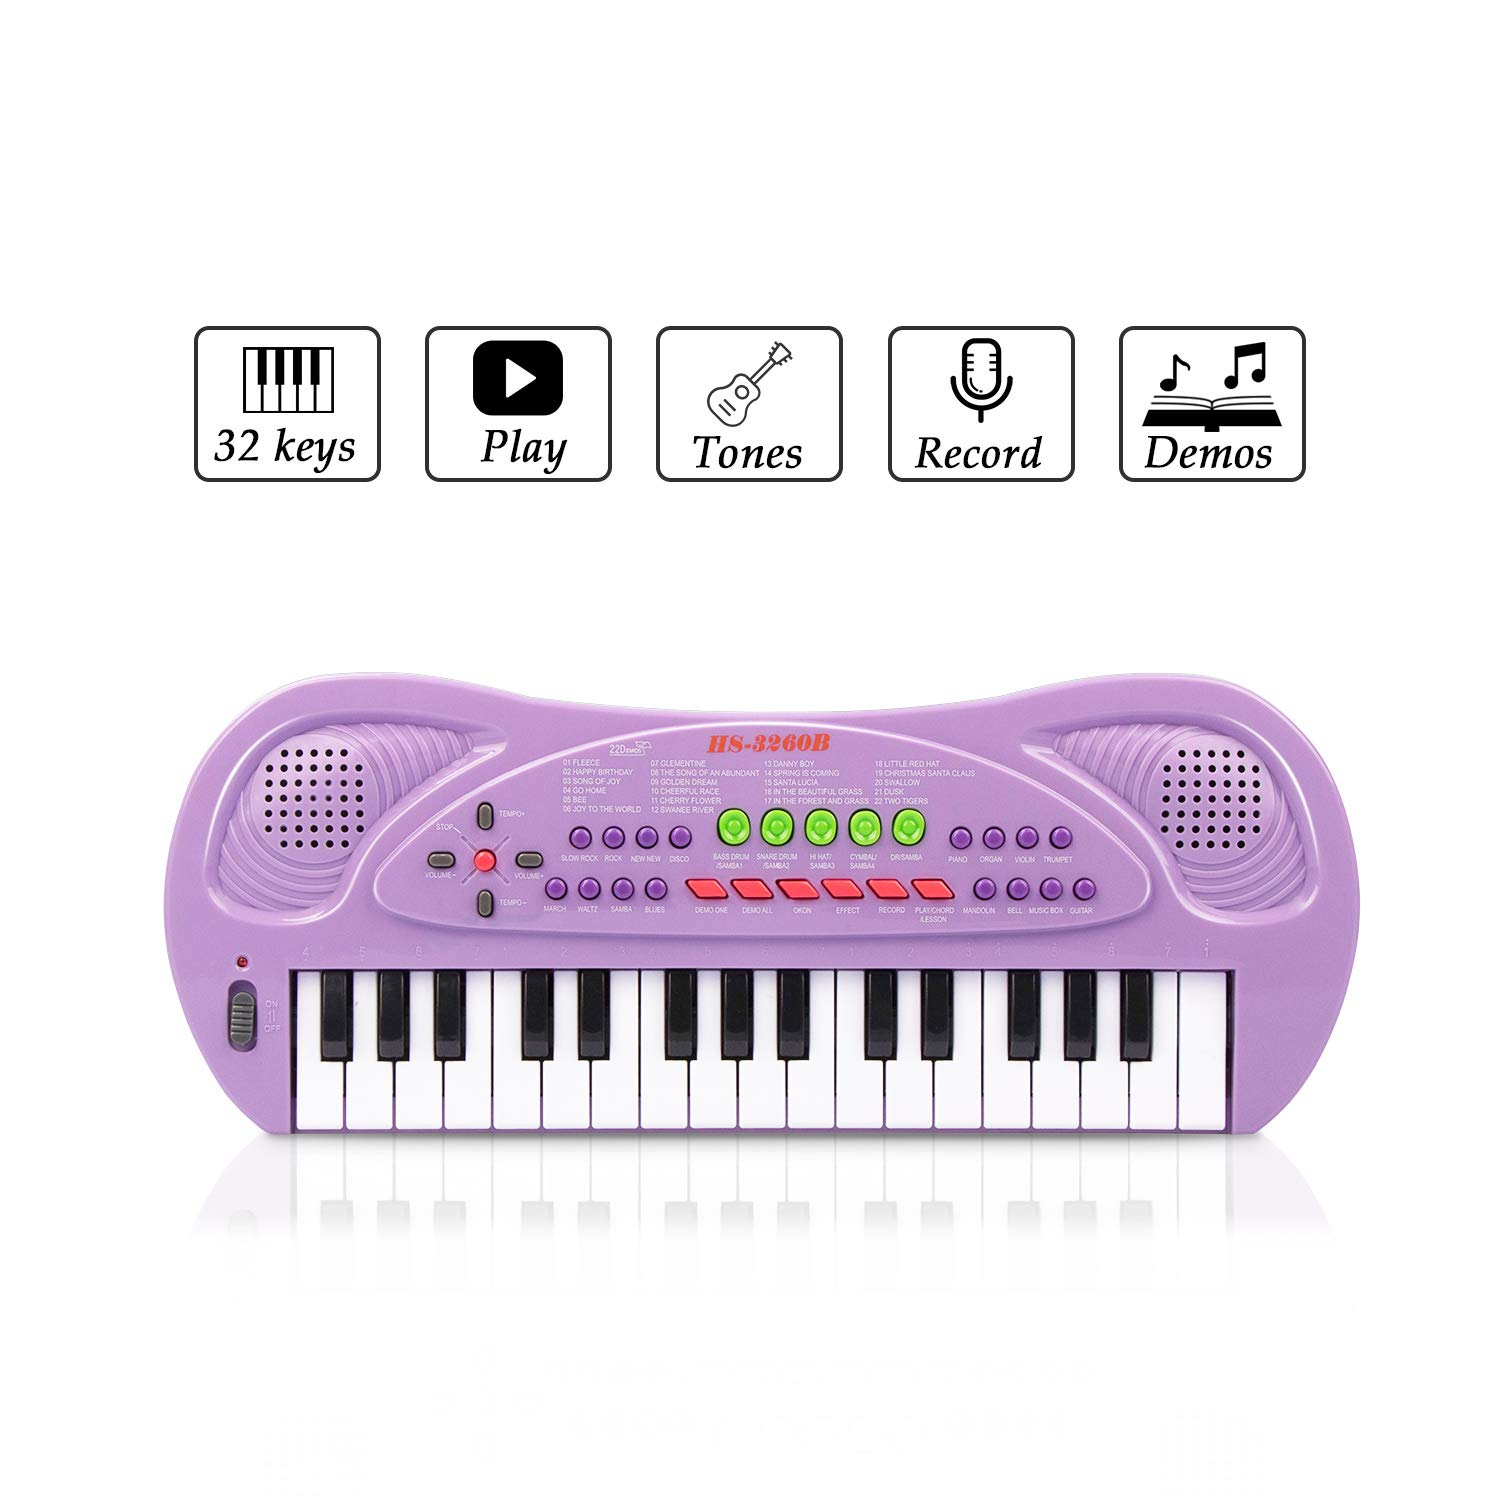 JINRUCHE Piano Keyboard Toy for Kids 32 Keys Multifunctional Toy Piano with Microphone for Baby Birthday Gift Toy for 2-6 Year Old Toddlers (Purple) by JINRUCHE